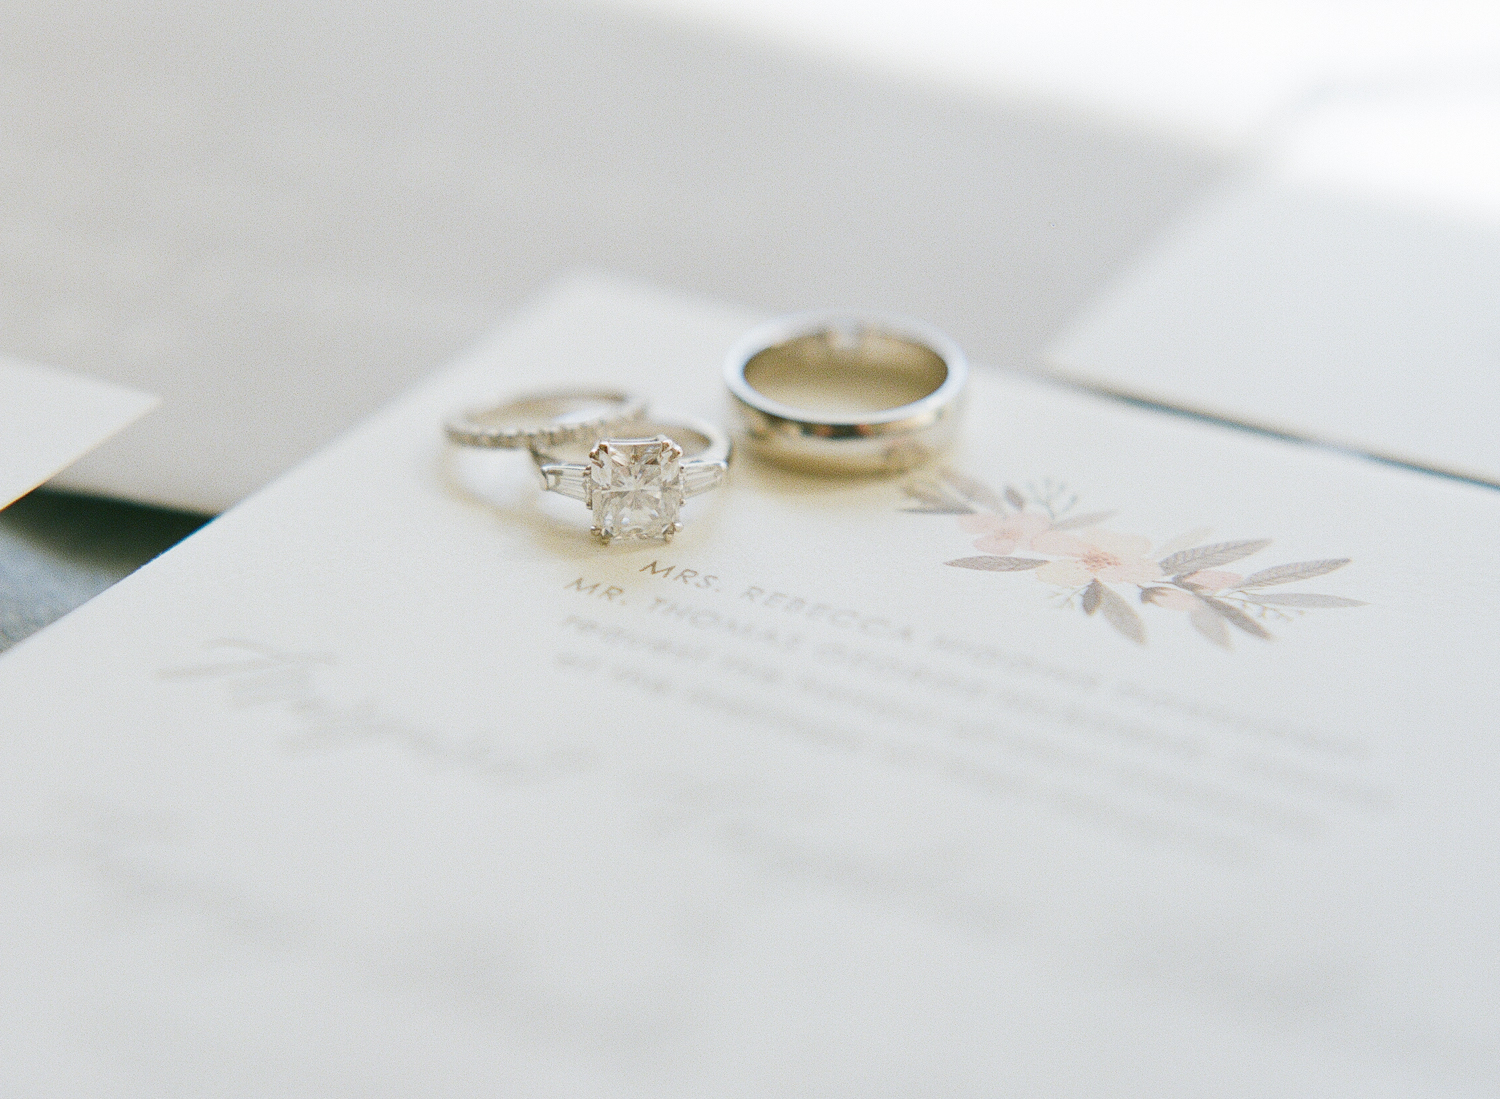 Margo + Tanguy's wedding rings sit atop their darling invitation suite during a pre-wedding shoot by Sylvie Gil